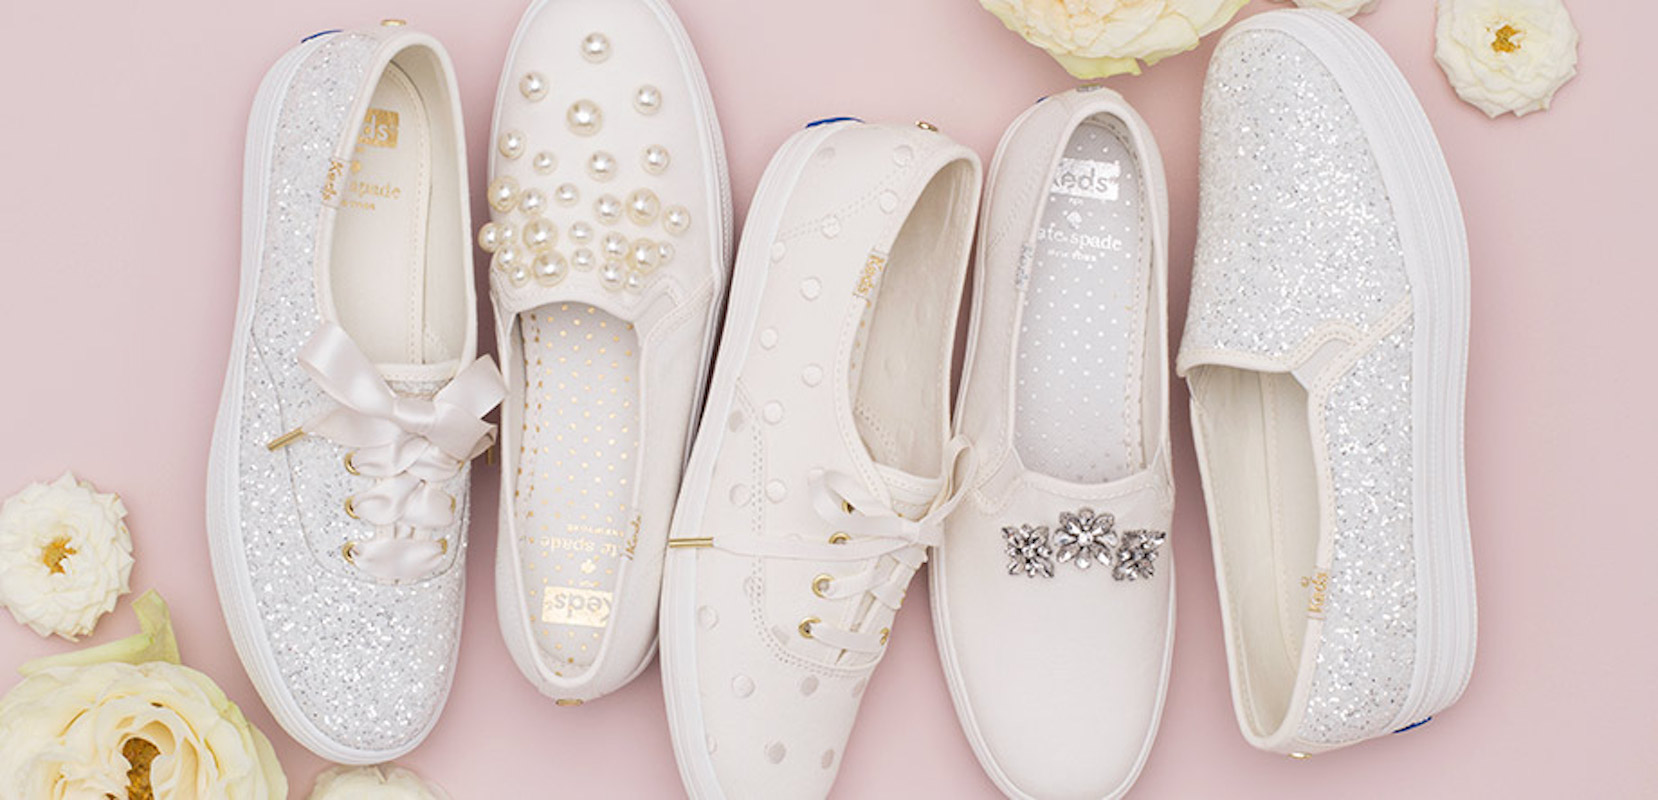 Keds Best Comfy Wedding Sneakers